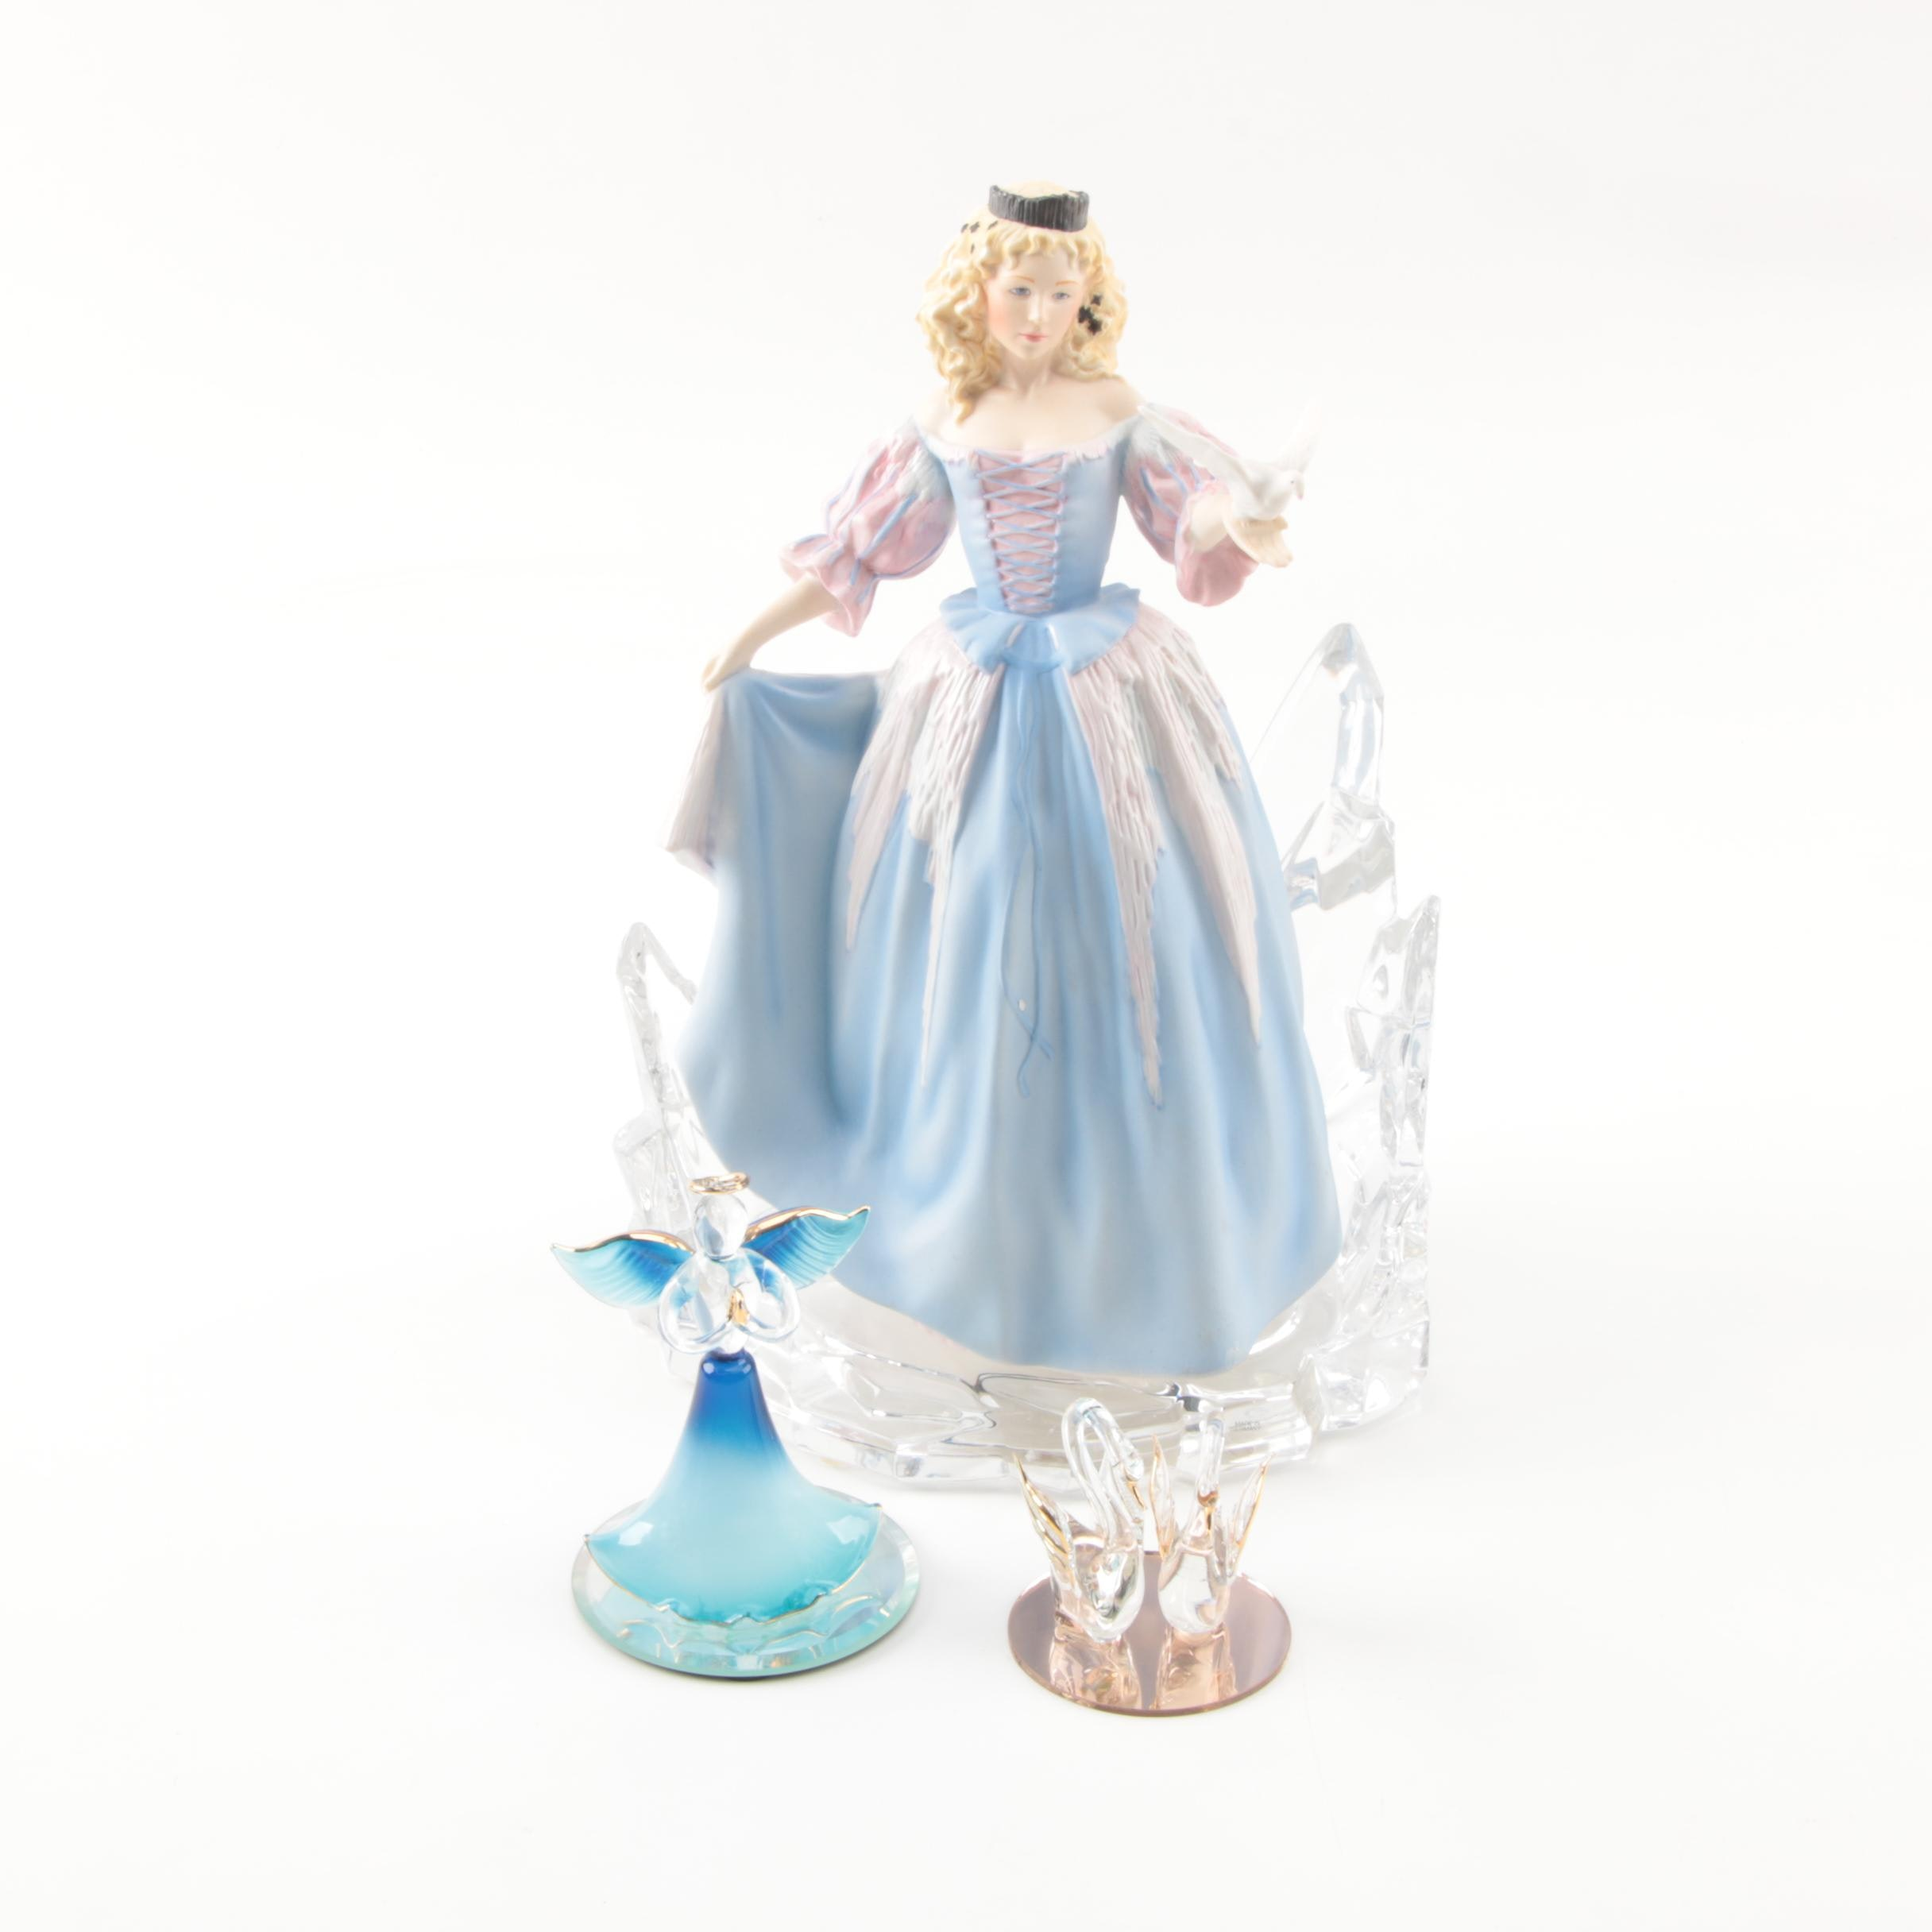 """House of Fabergé """"Princess of the Ice Palace"""" Porcelain Figurine and More"""